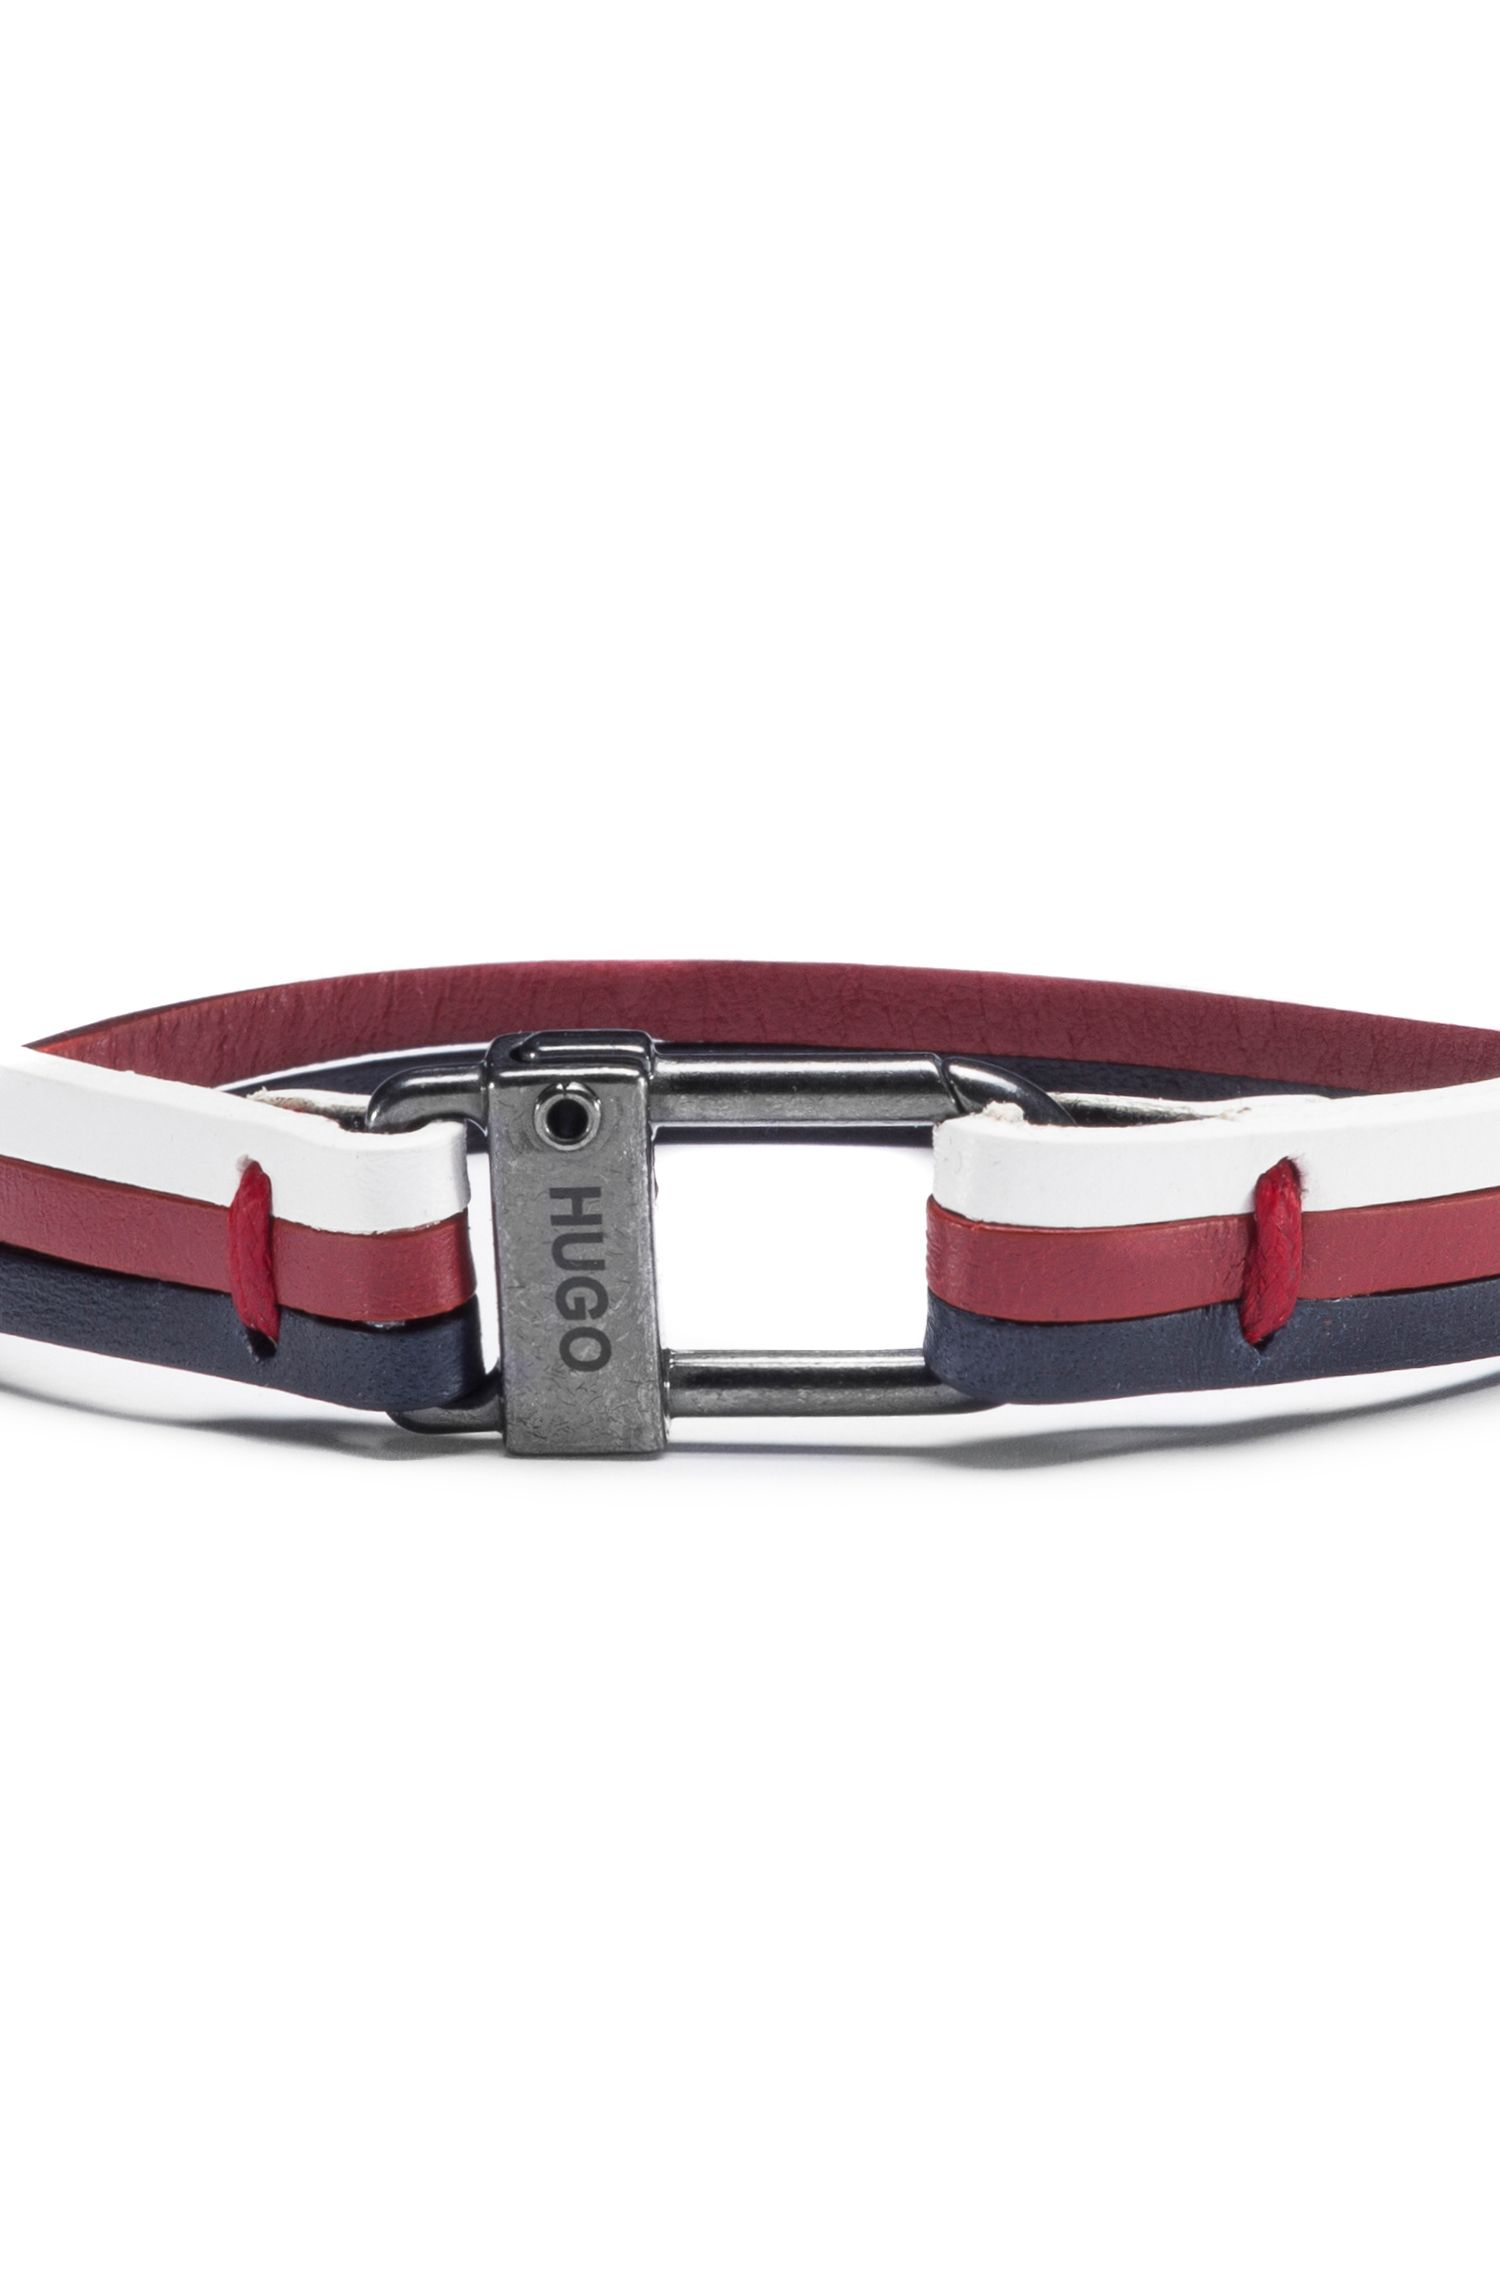 Three-strap cuff in nappa leather with logo closure, Patterned